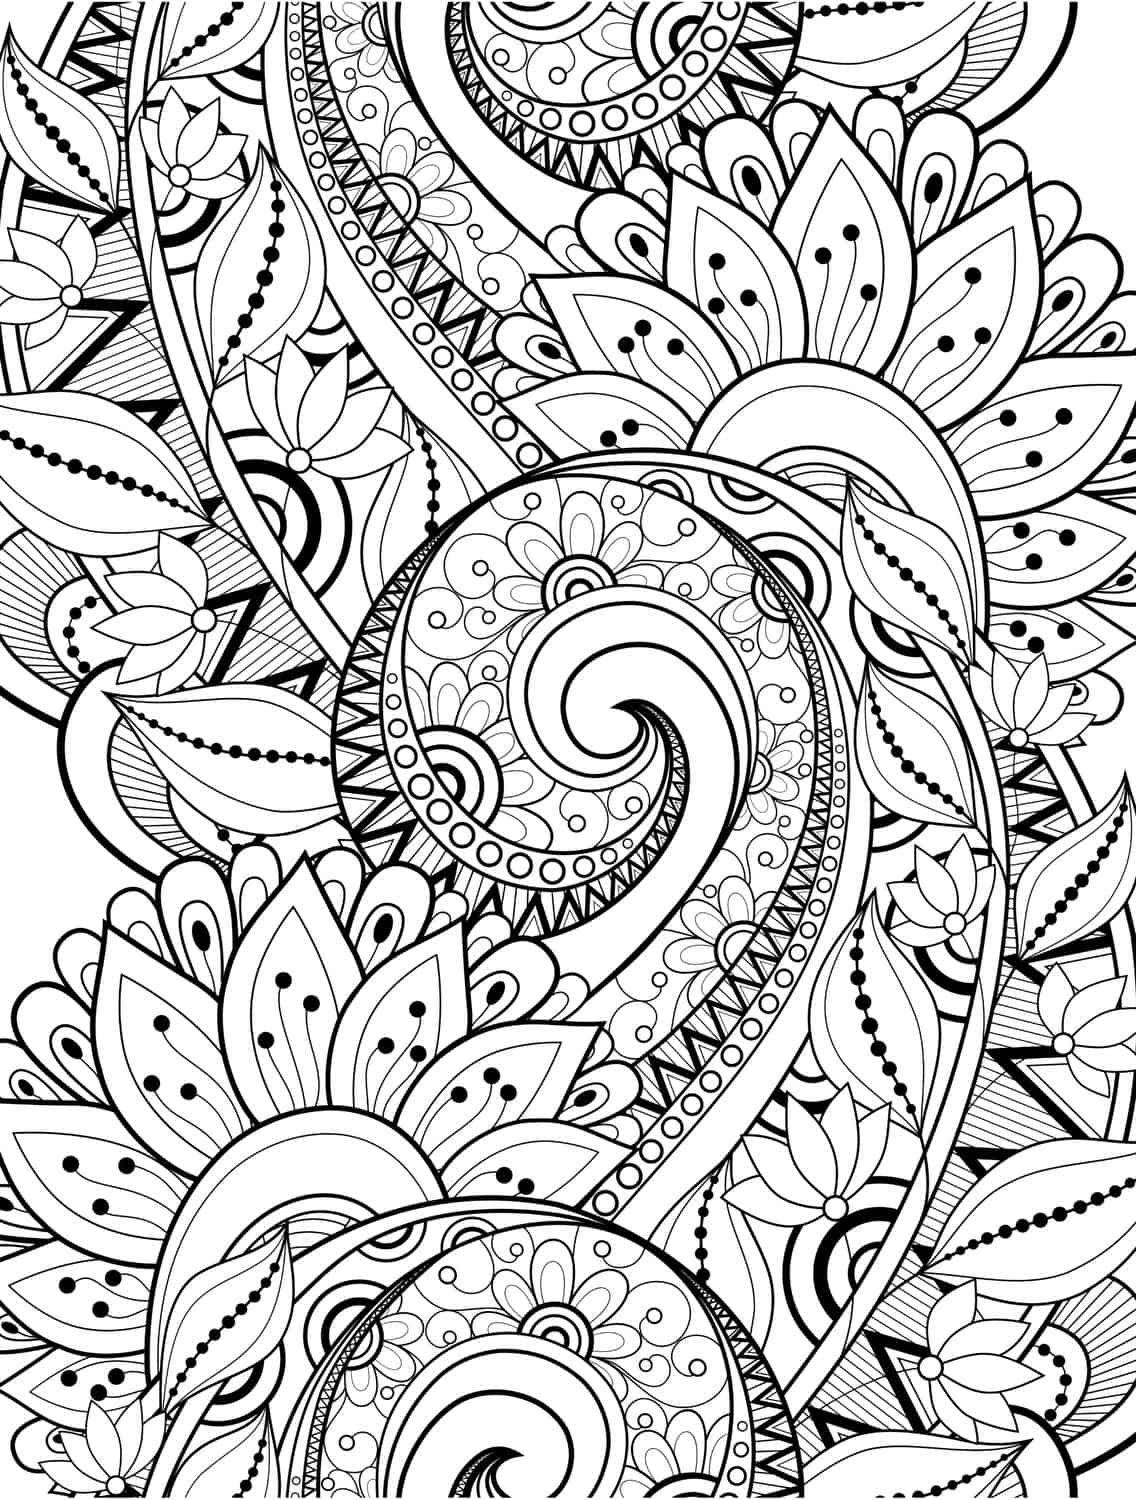 crazy coloring pages for adults - photo#8